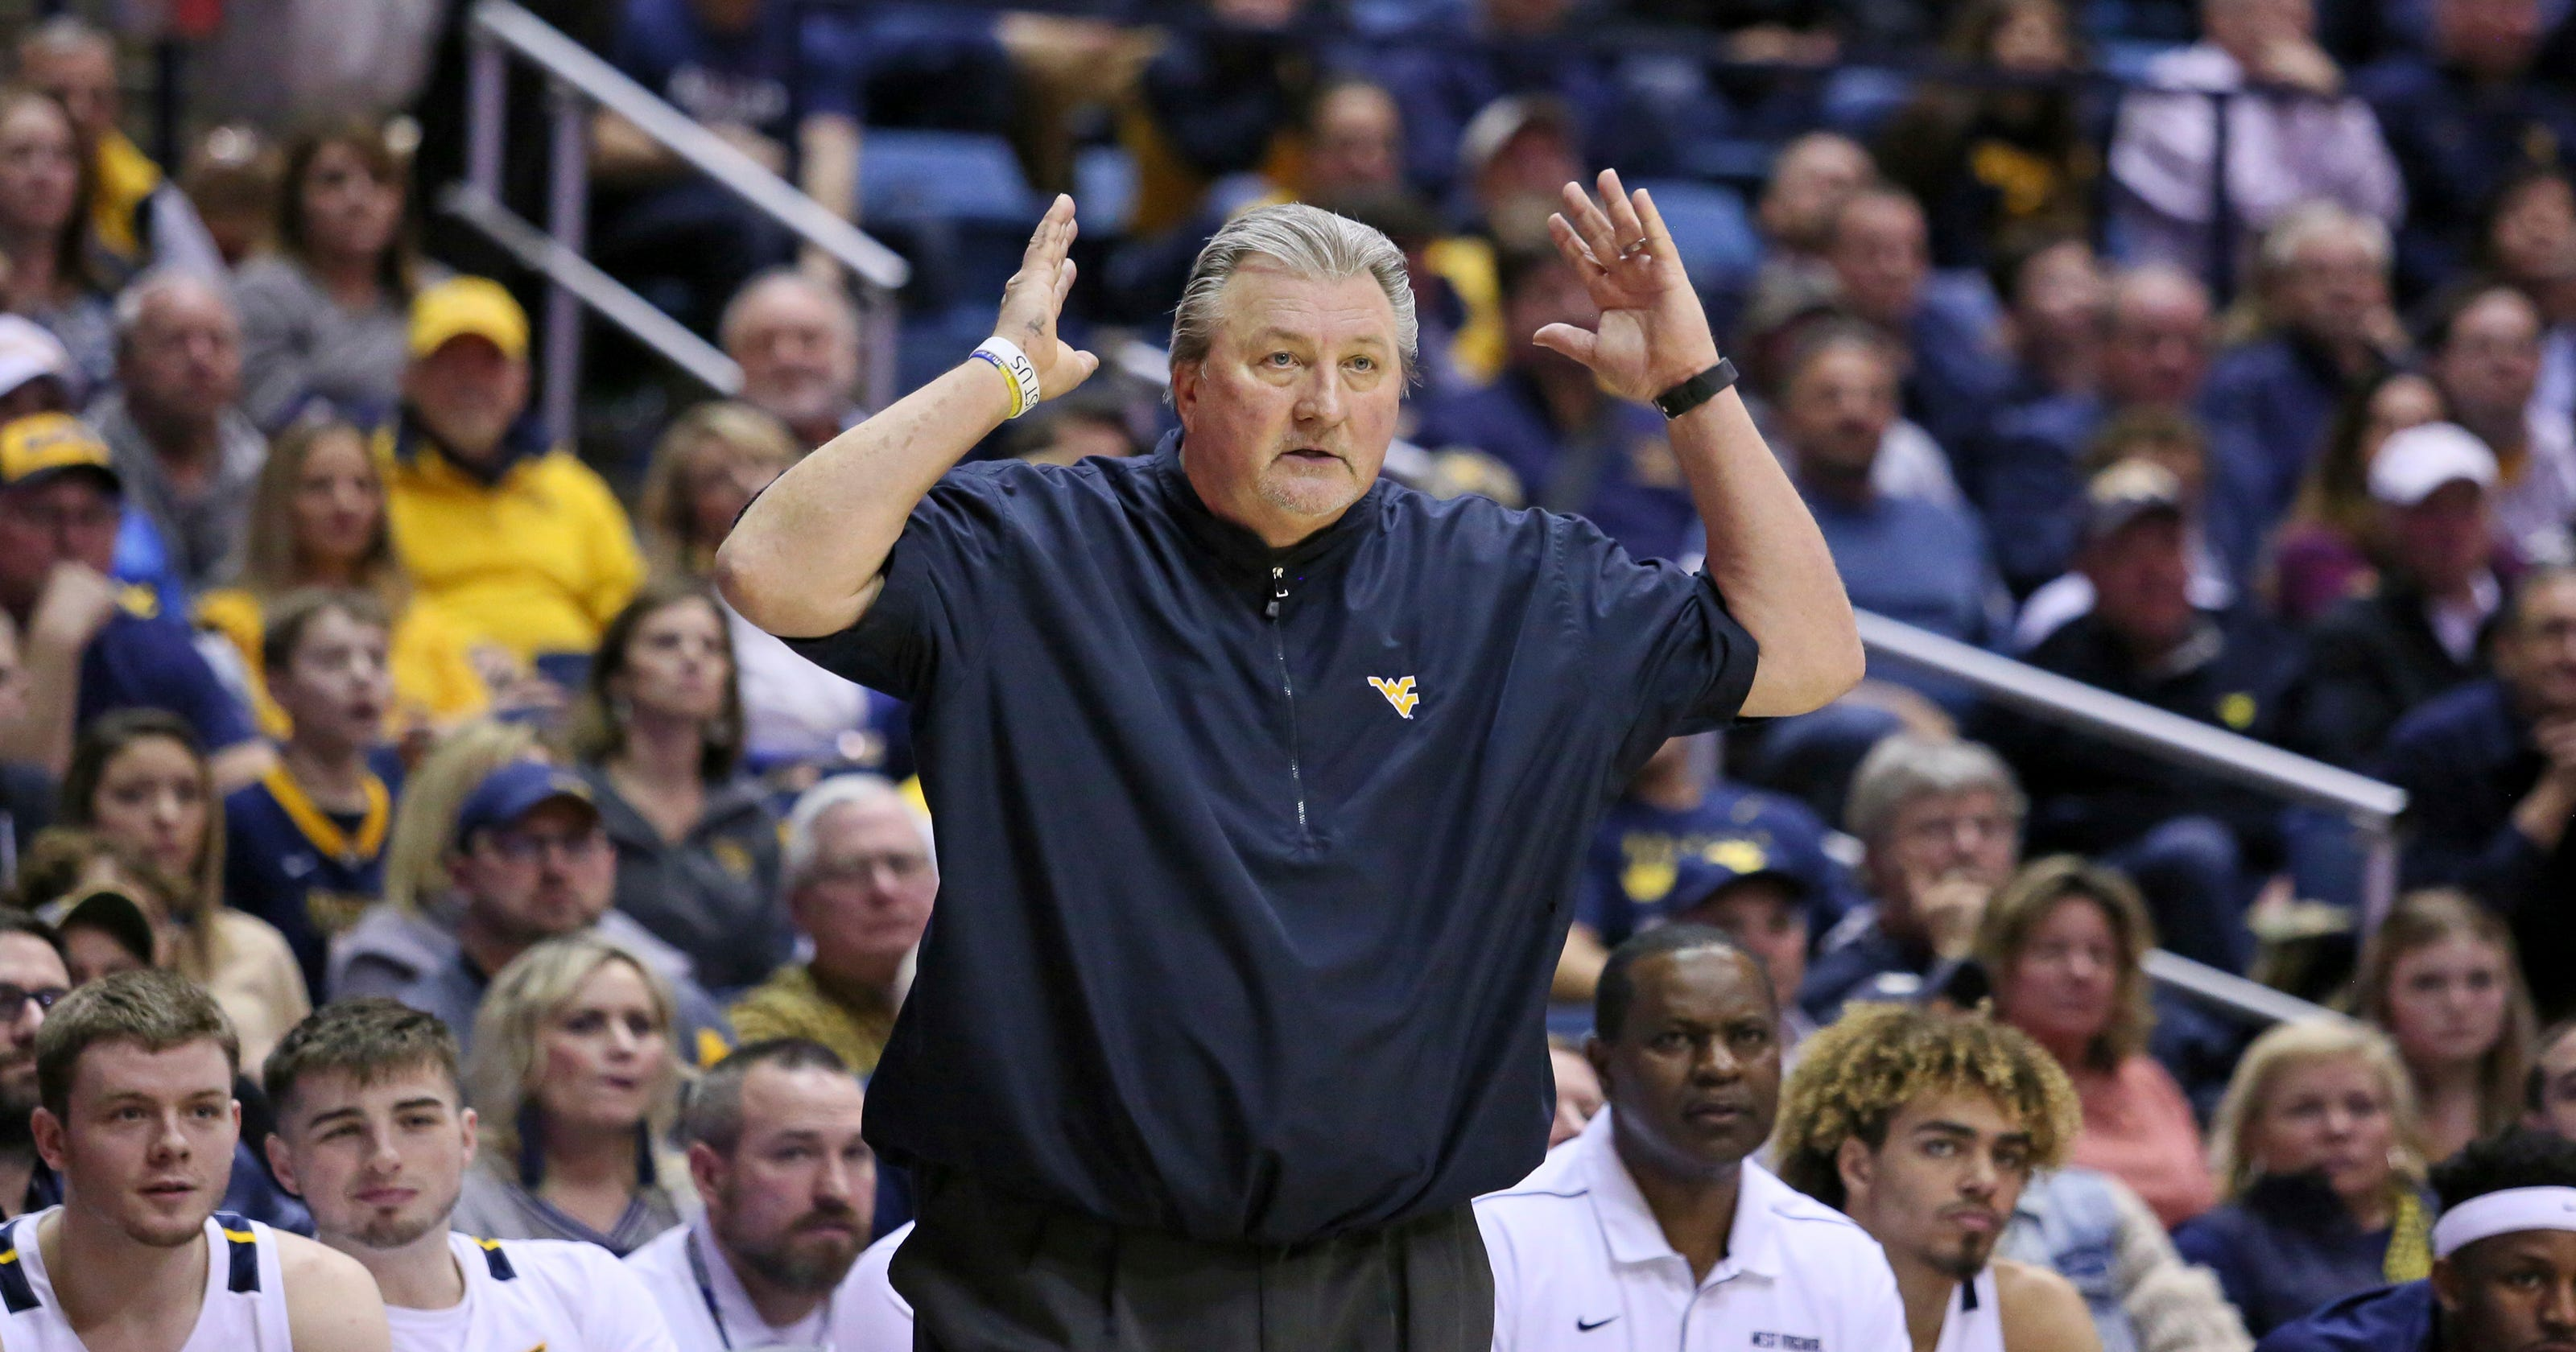 Bob Huggins ties Dean Smith for sixth all-time among Division I coaches with 879th win